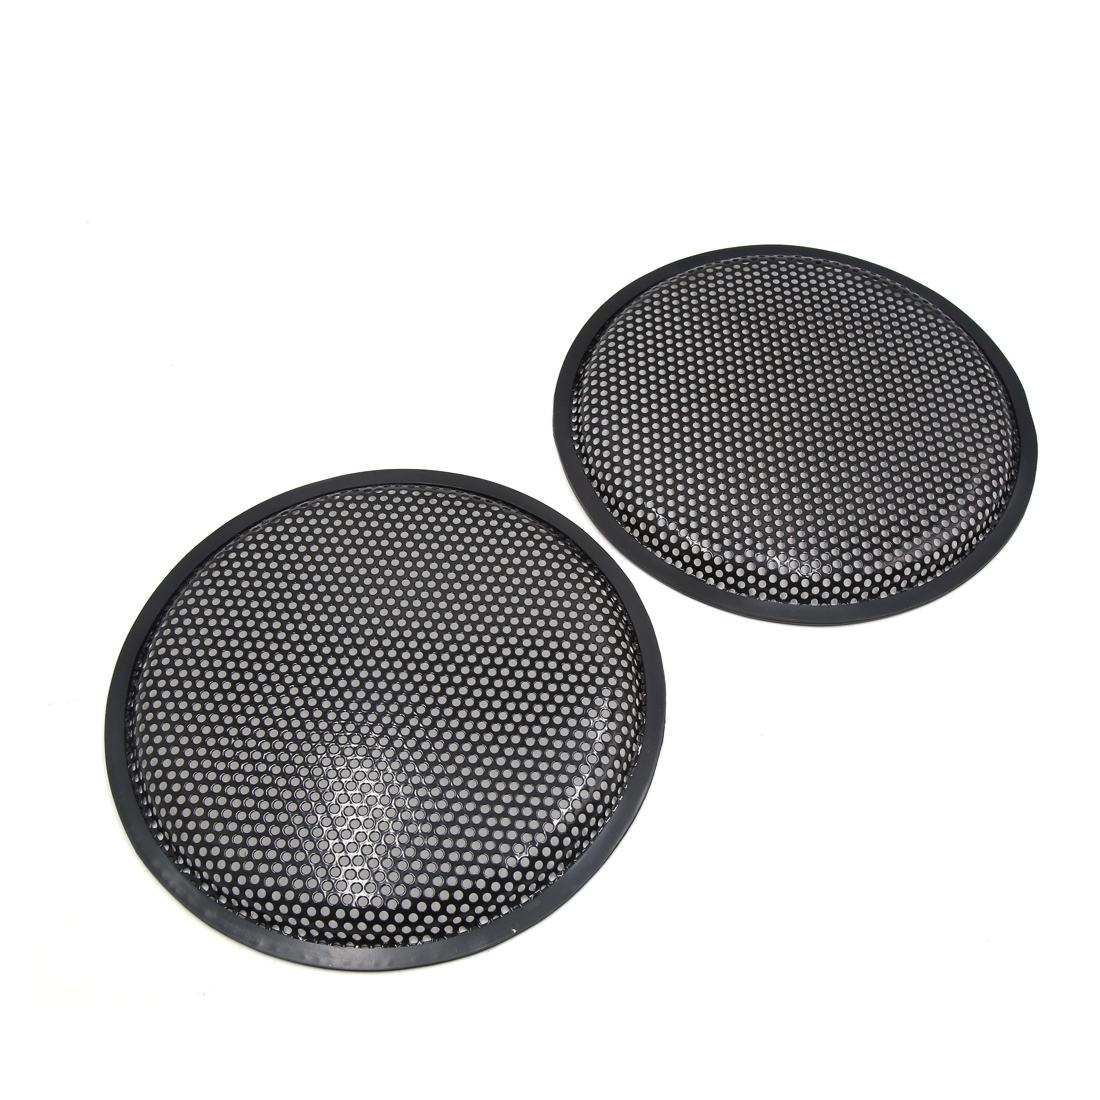 "2 Pcs 10"" Dia Black Metal Mesh Audio Speaker Subwoofer Dust Cover Protector for Auto Car"